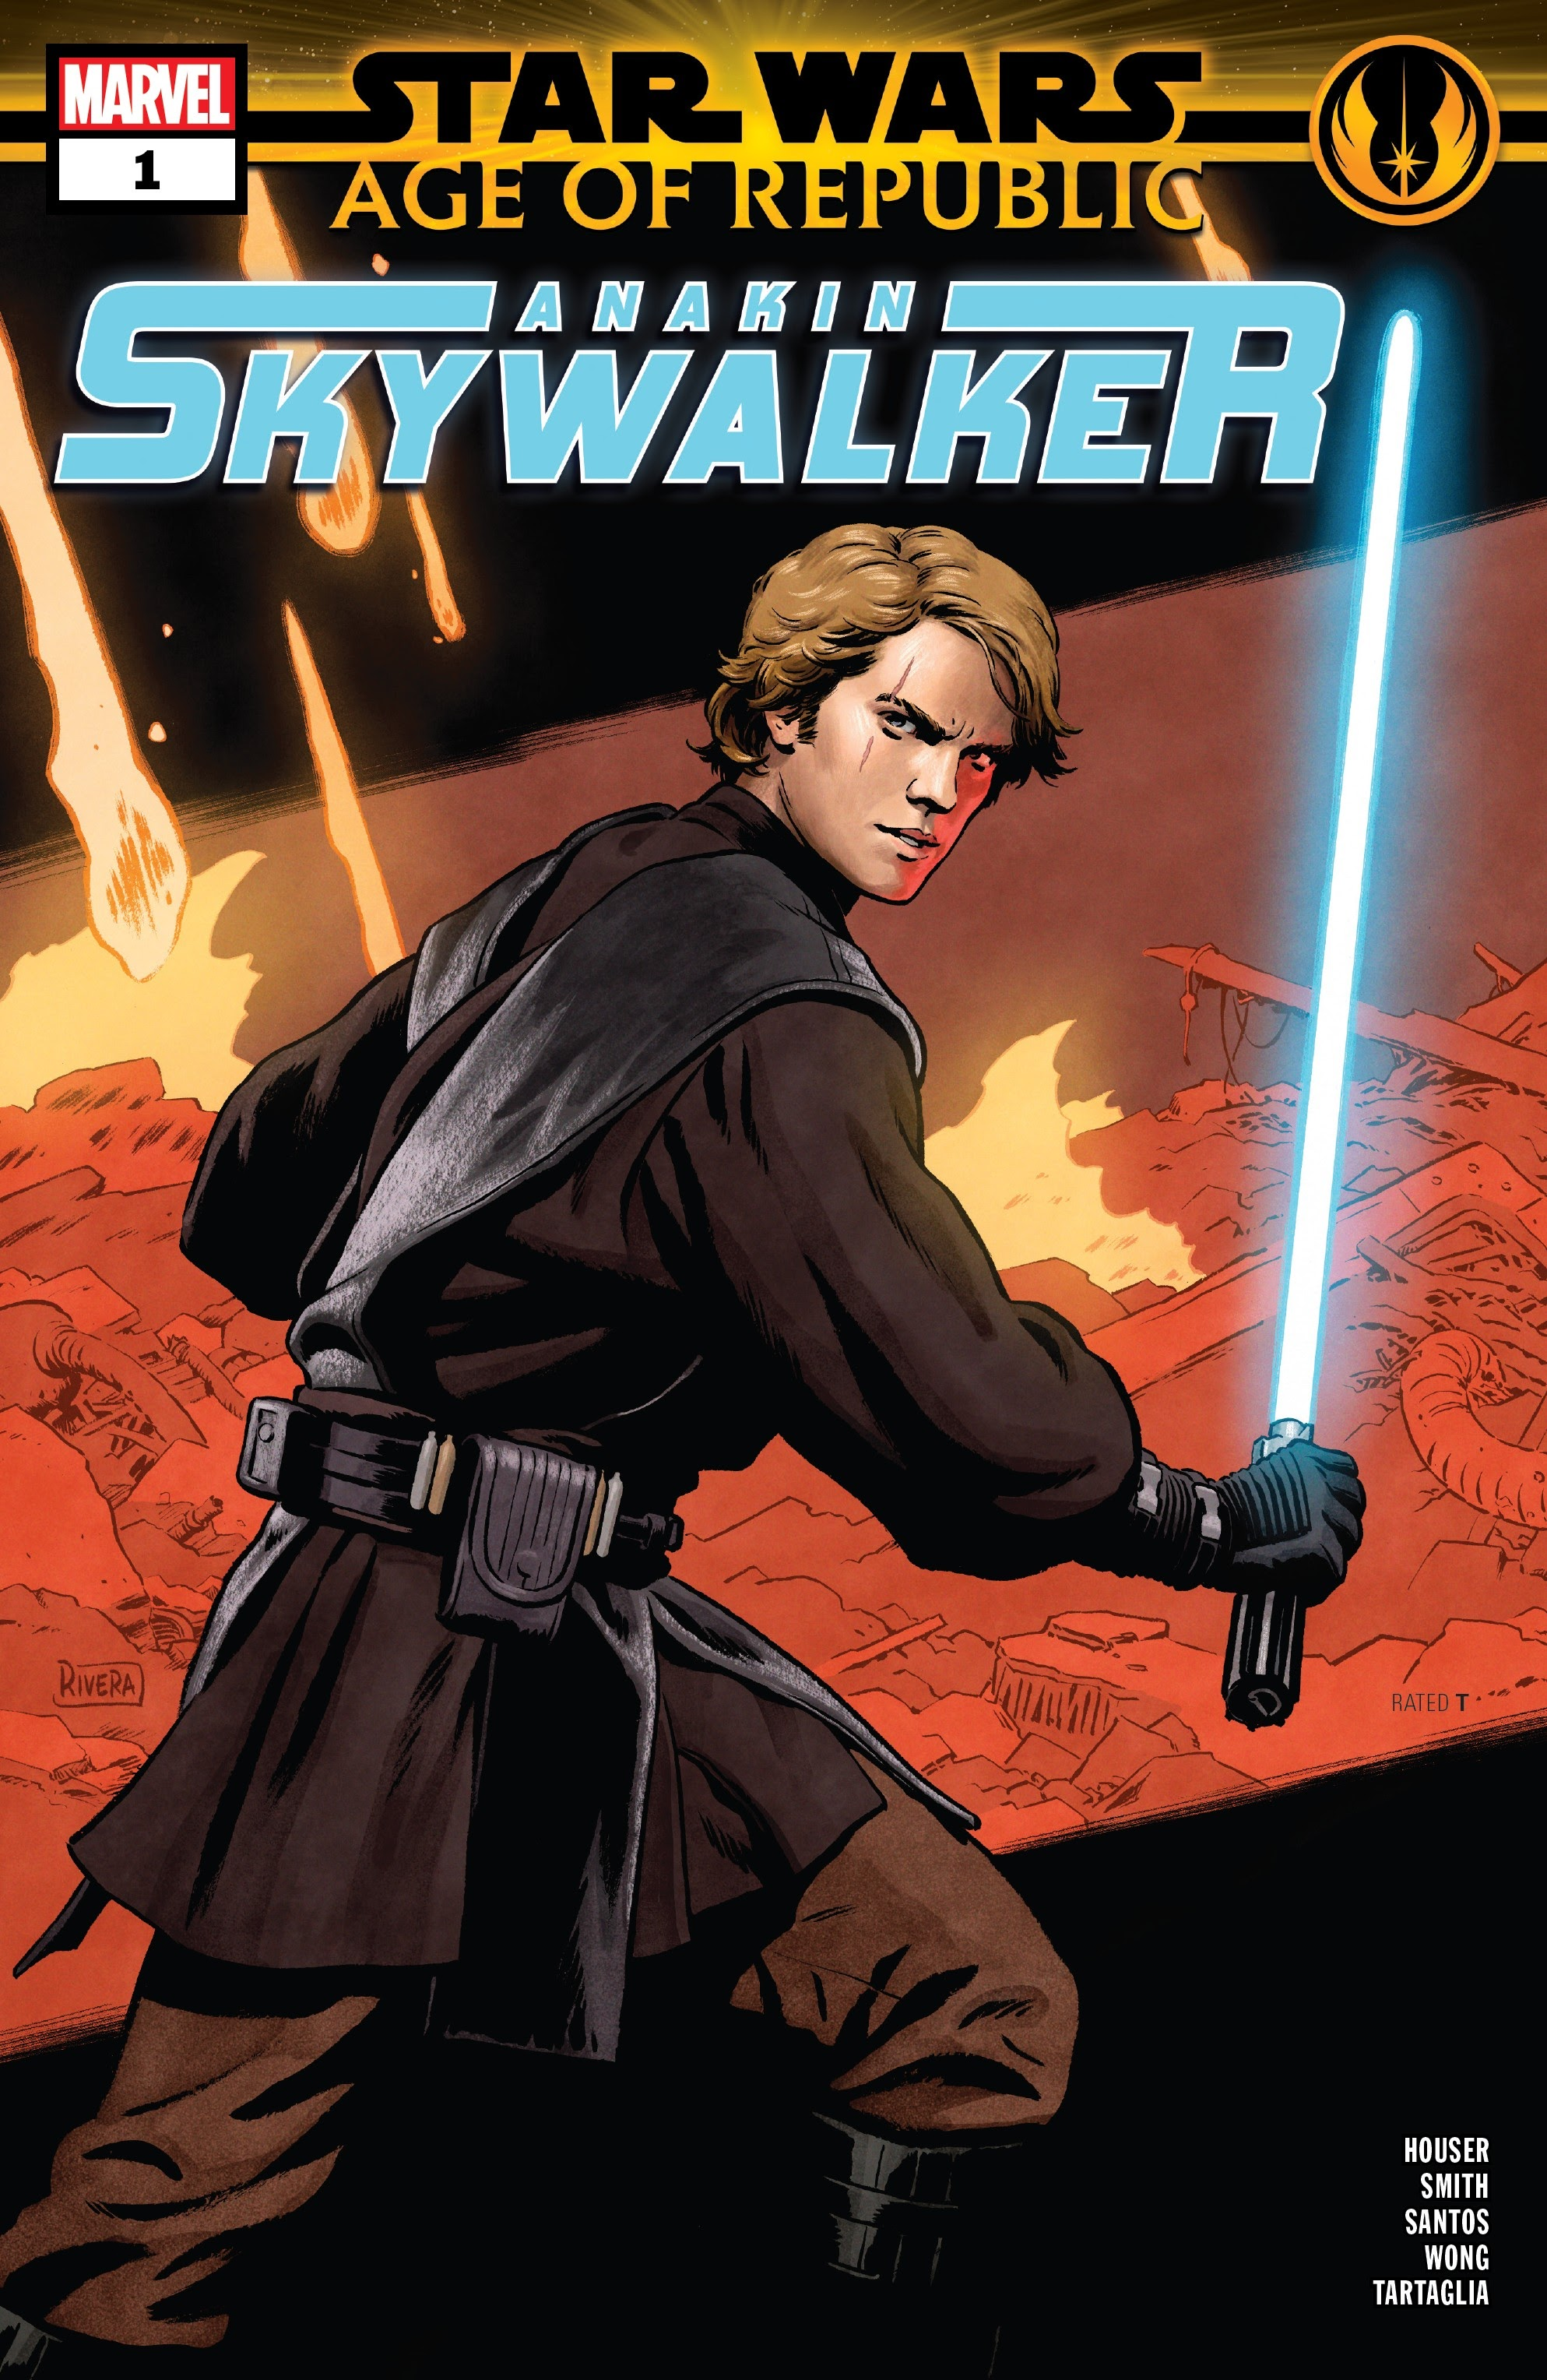 Star Wars: Age of Republic: Anakin Skywalker Full Page 1